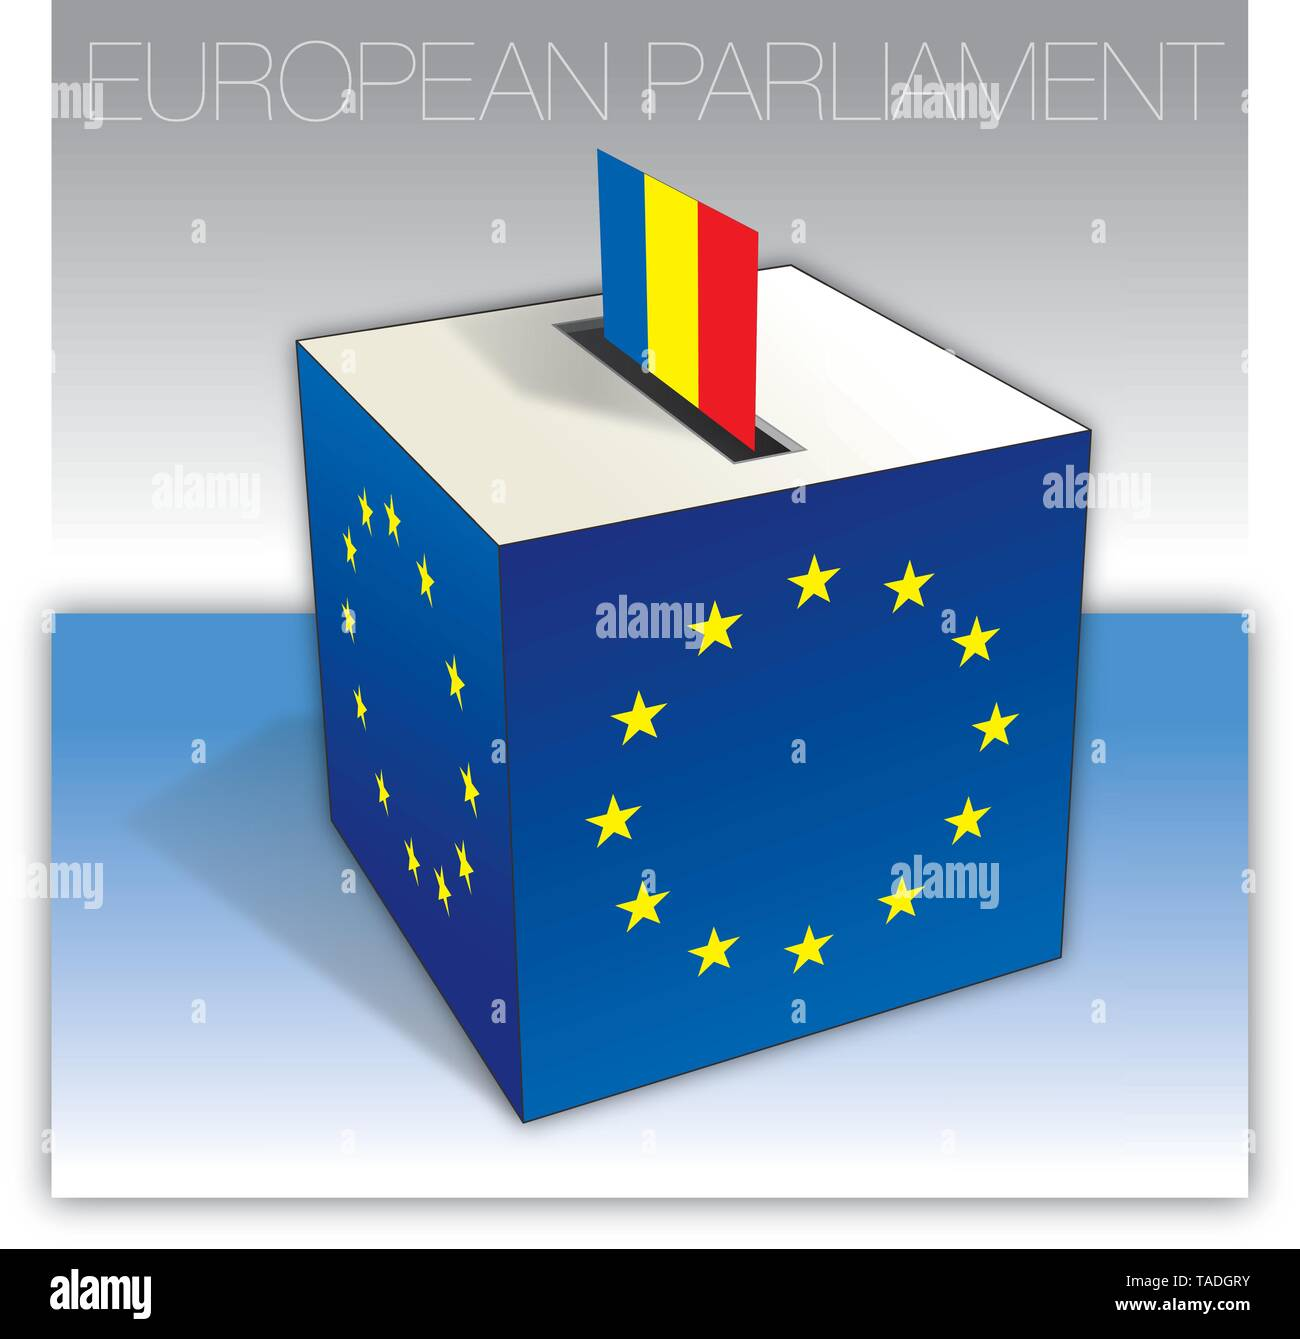 Romania voting box, European parliament elections, flag and national symbols, vector illustration - Stock Image